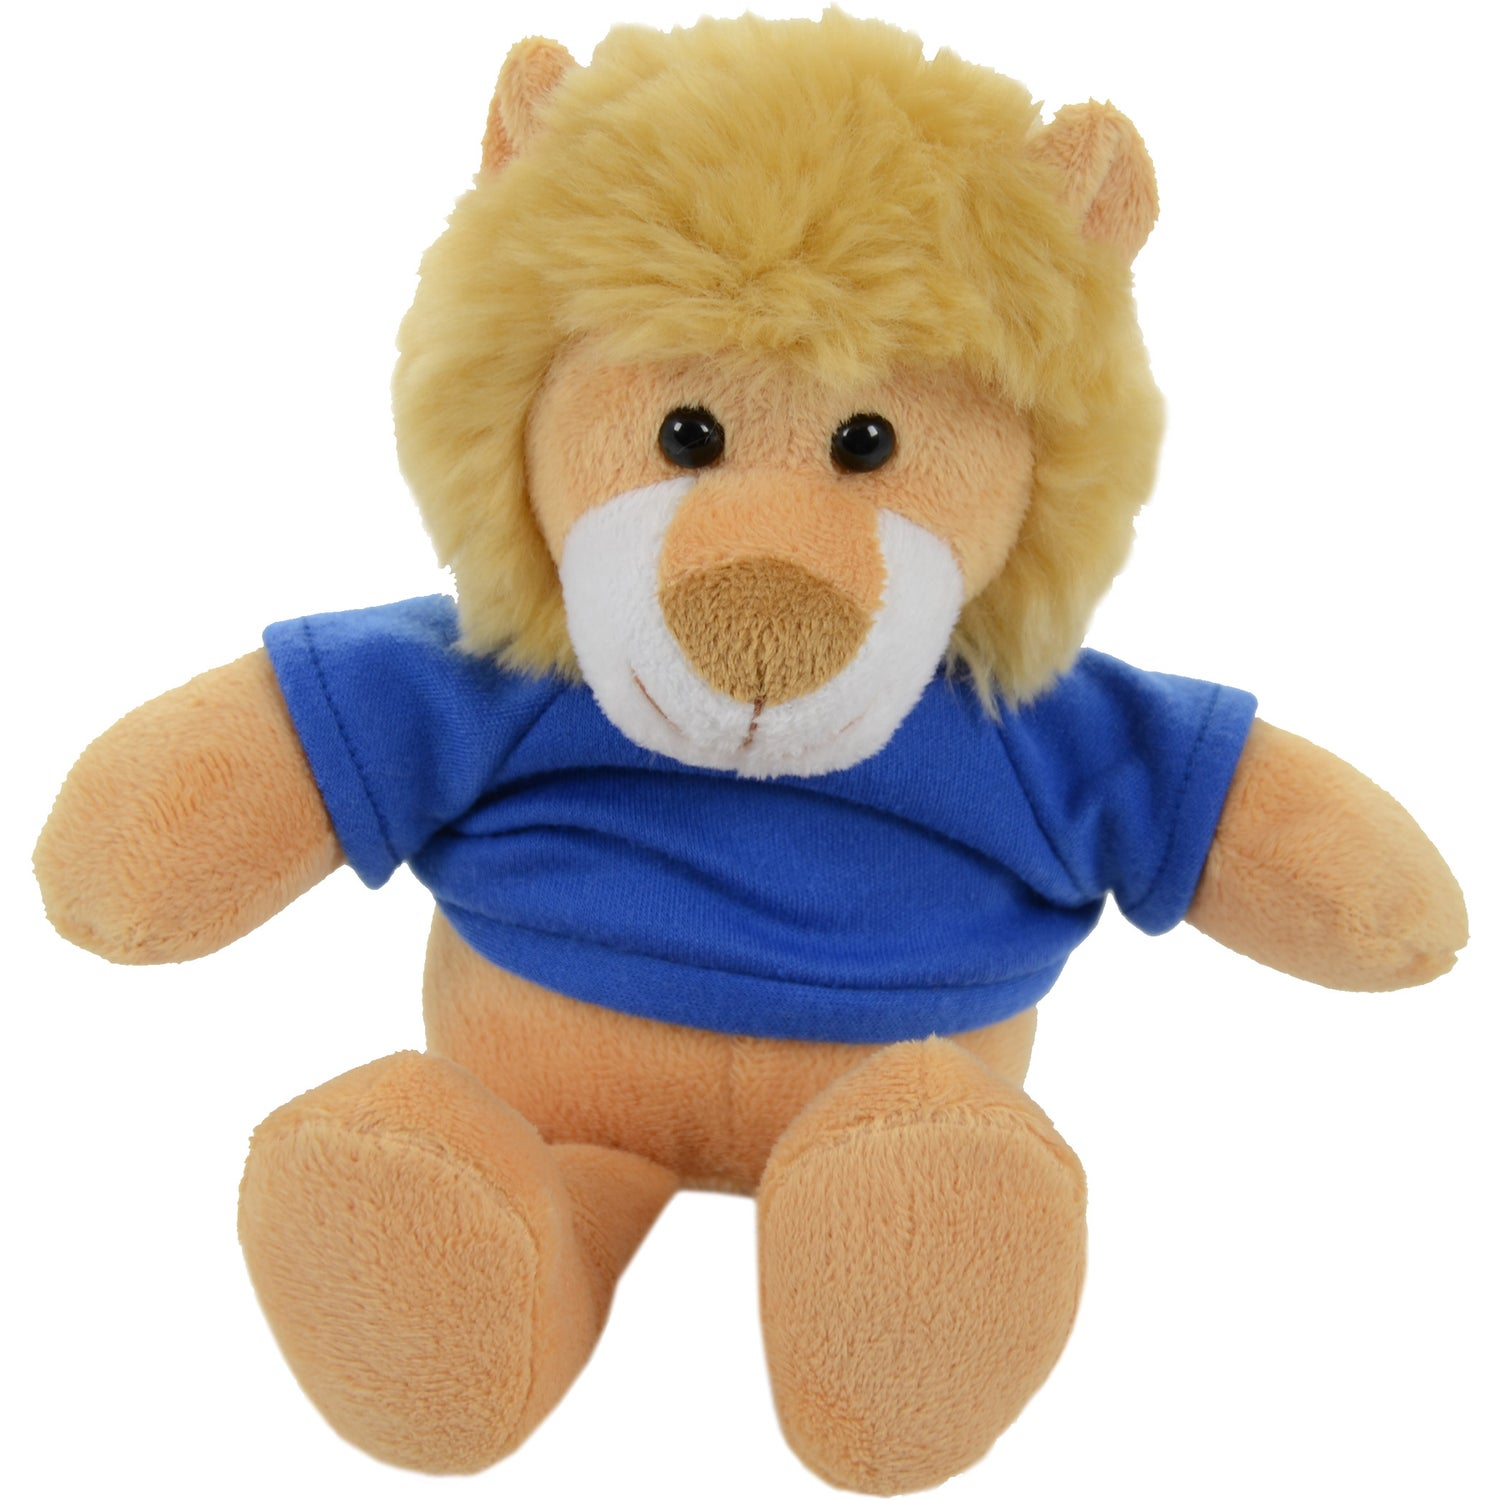 Plush Toys Product : Chit chatters plush toys trade show giveaways ea